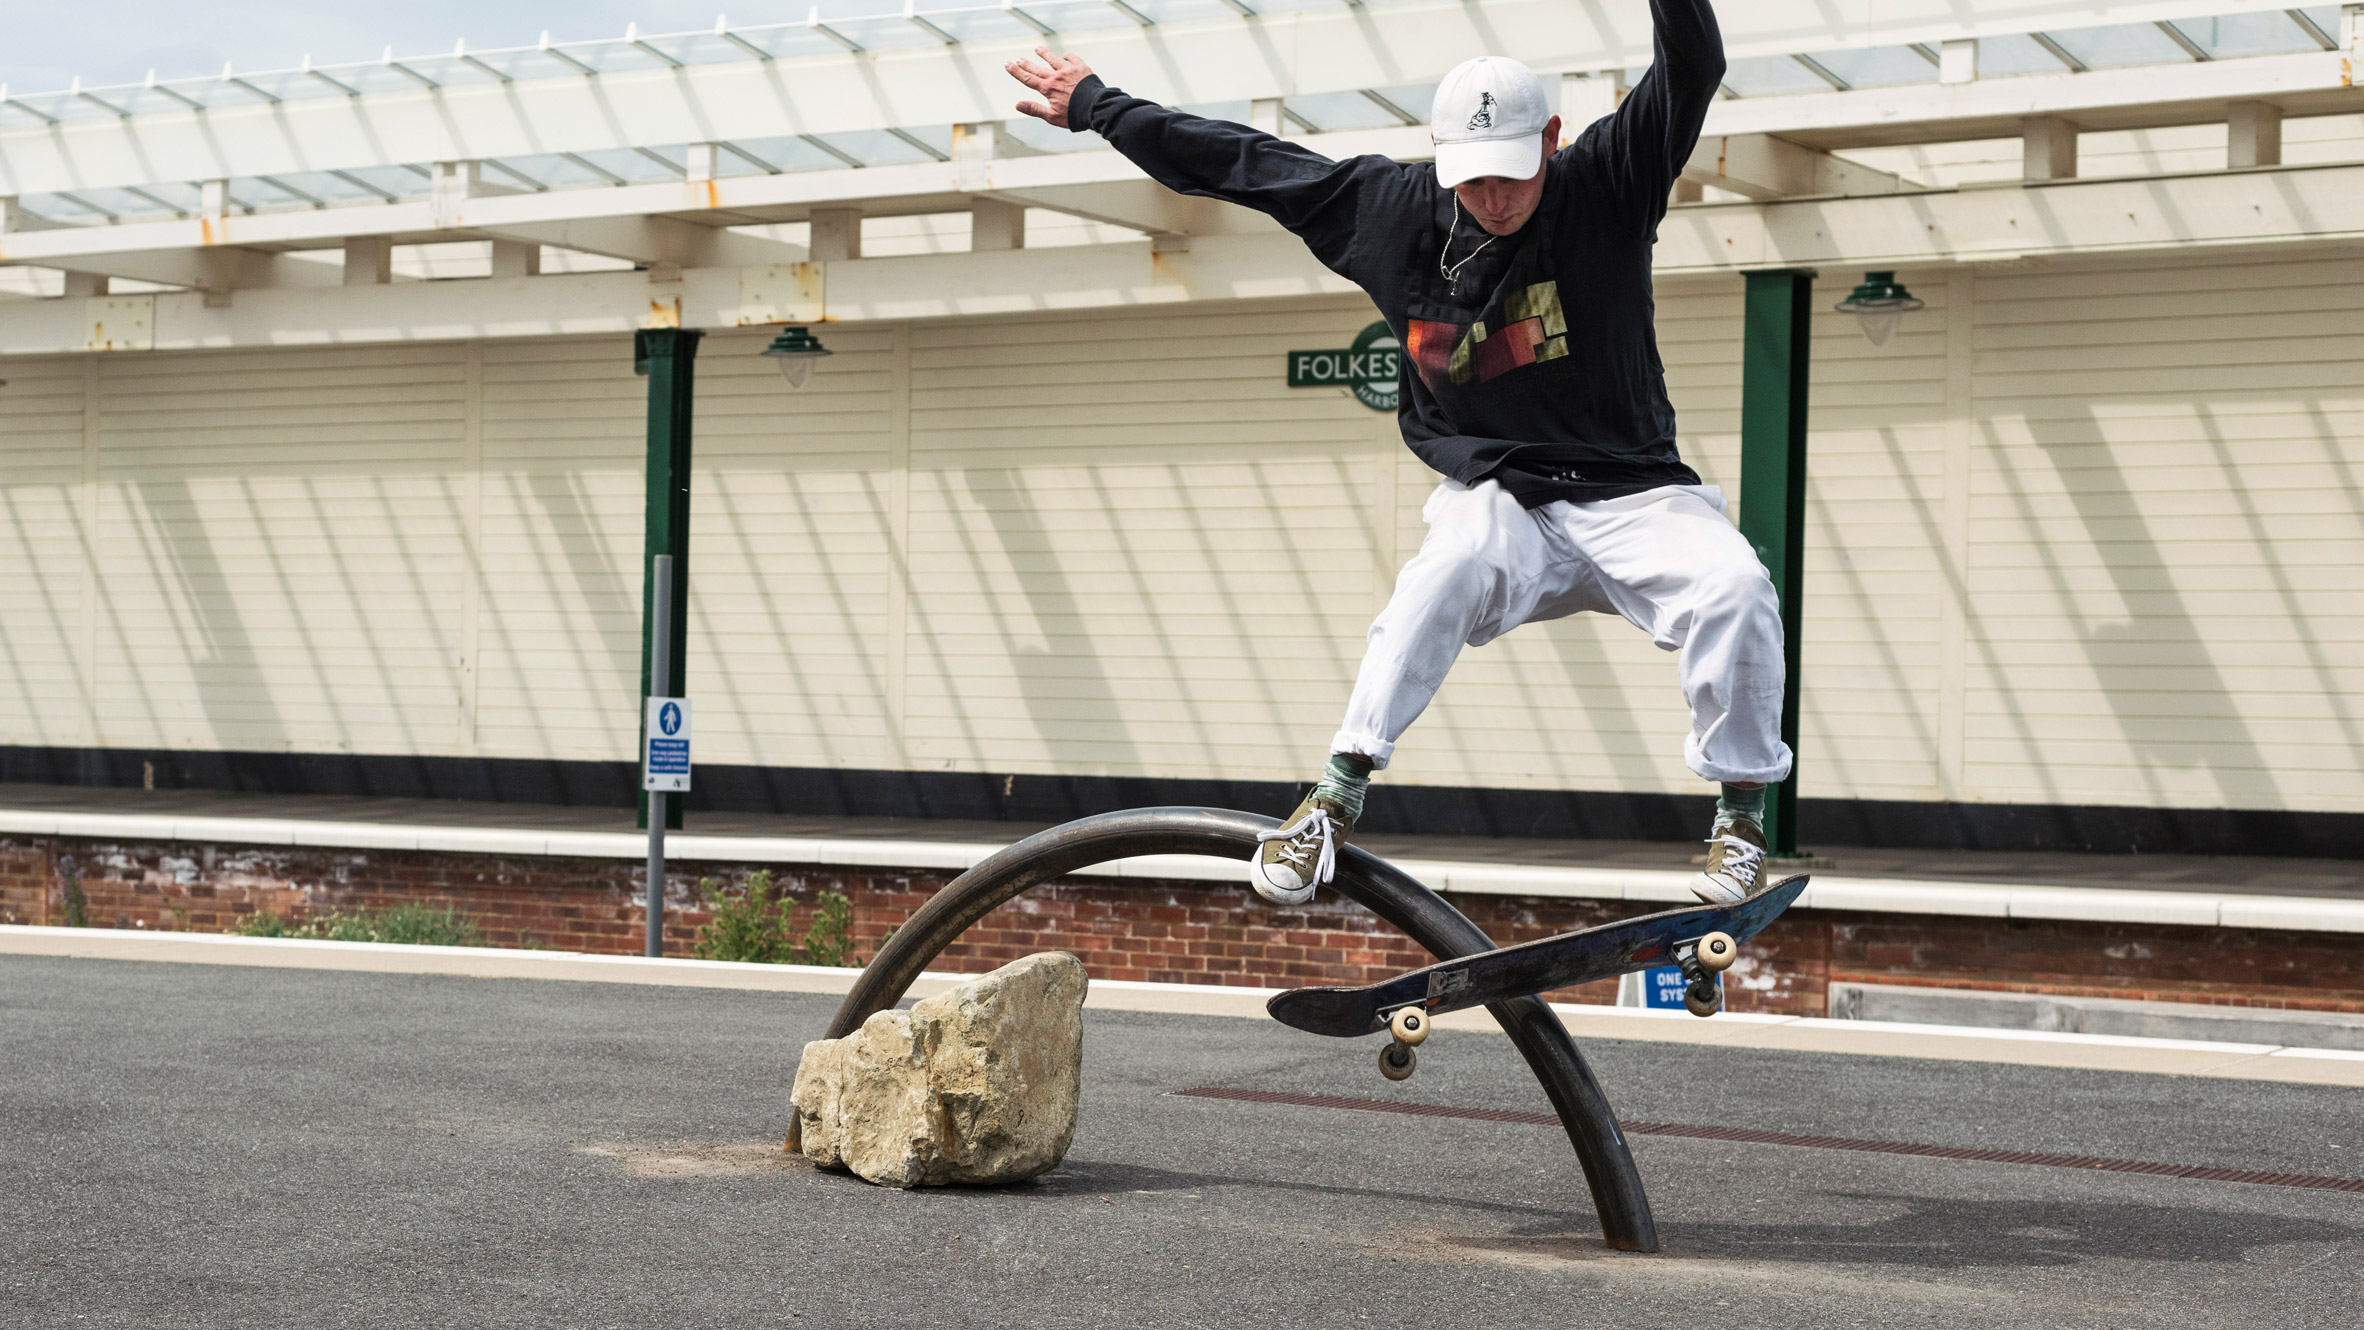 Skater performing a trick on a rainbow-shaped sculpture by Assemble at the Folkestone Triennial 2021